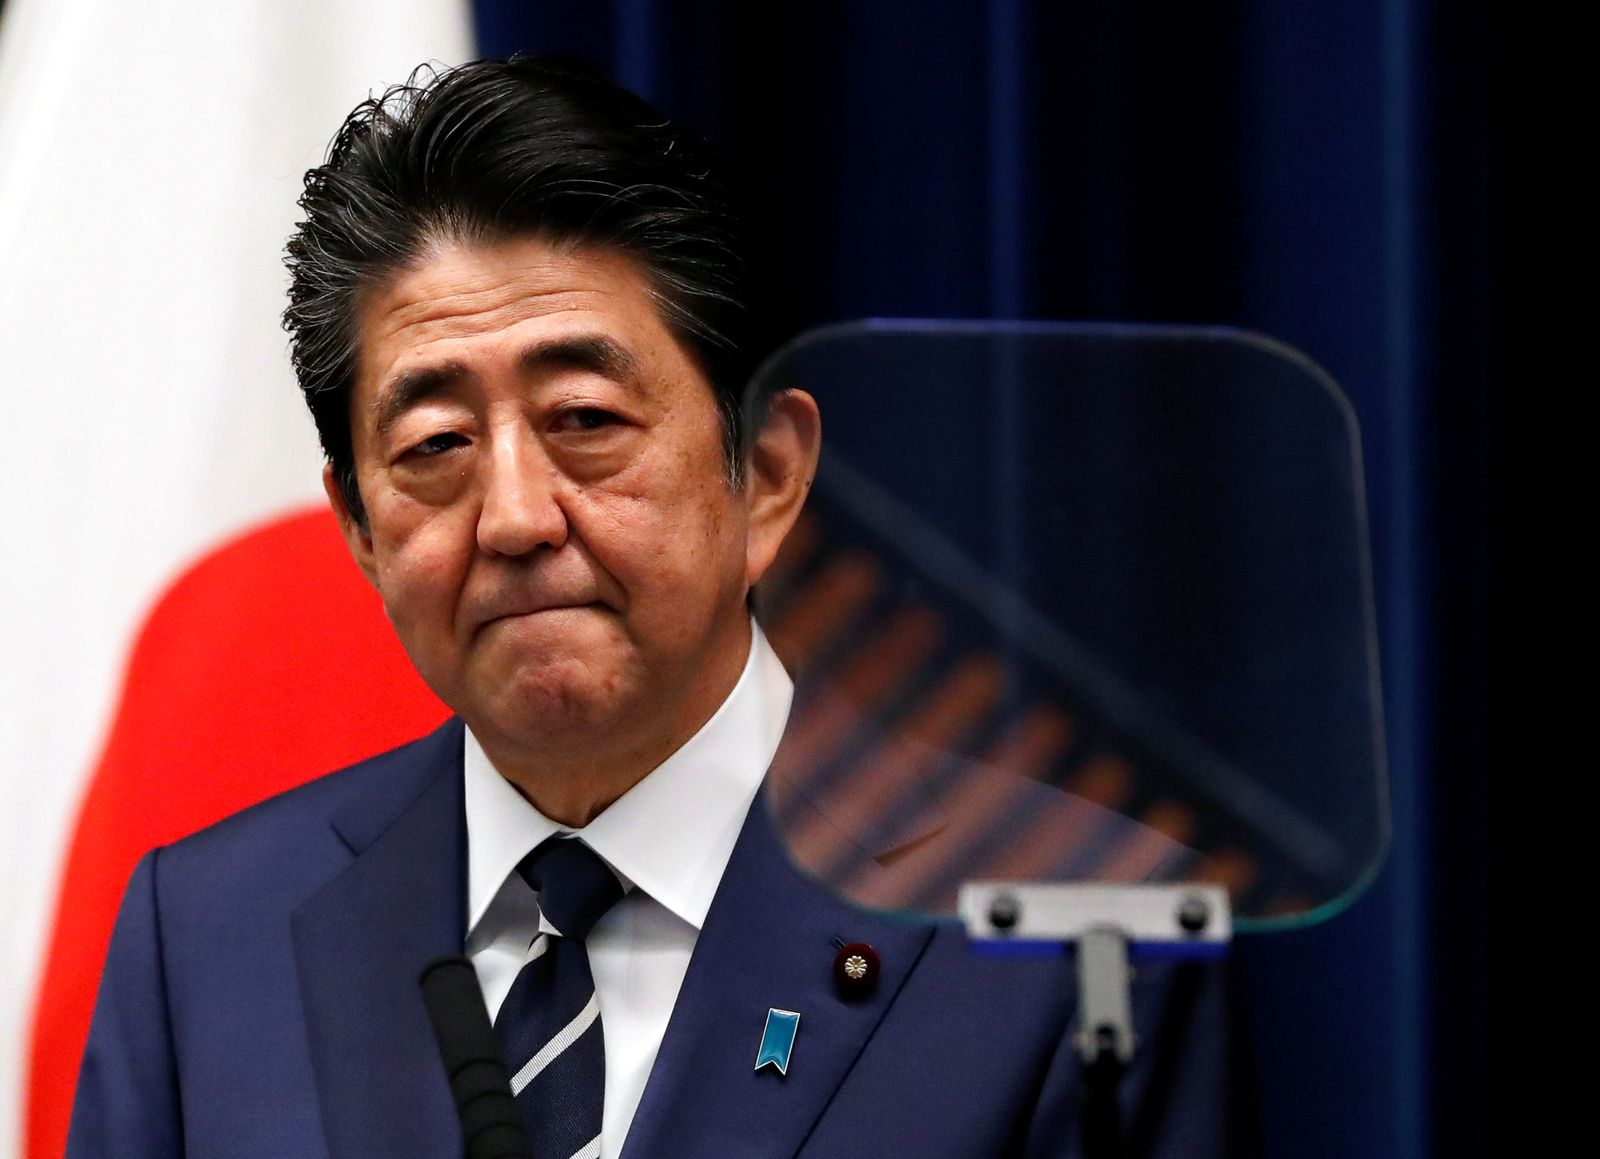 Japan's Prime Minister Shinzo Abe attends a news conference on coronavirus at his official residence in Tokyo